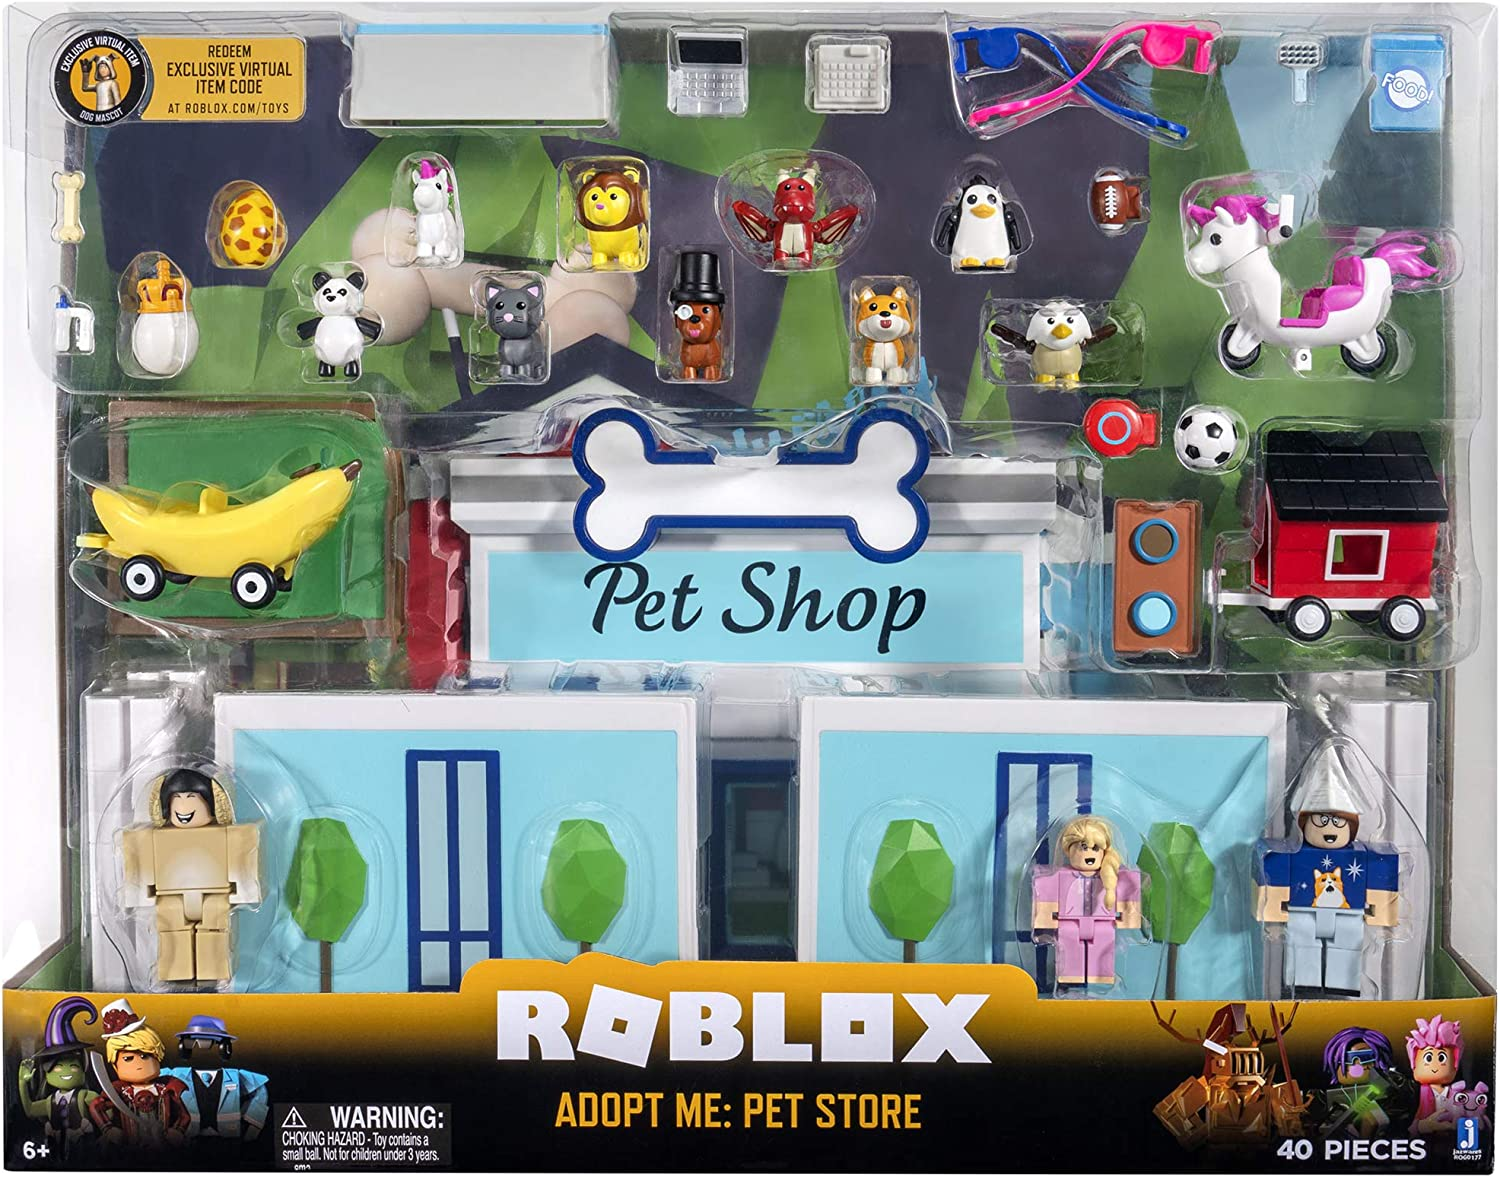 Roblox Adopt A Kid Game Amazon Com Roblox Celebrity Collection Adopt Me Pet Store Deluxe Playset Includes Exclusive Virtual Item Toys Games